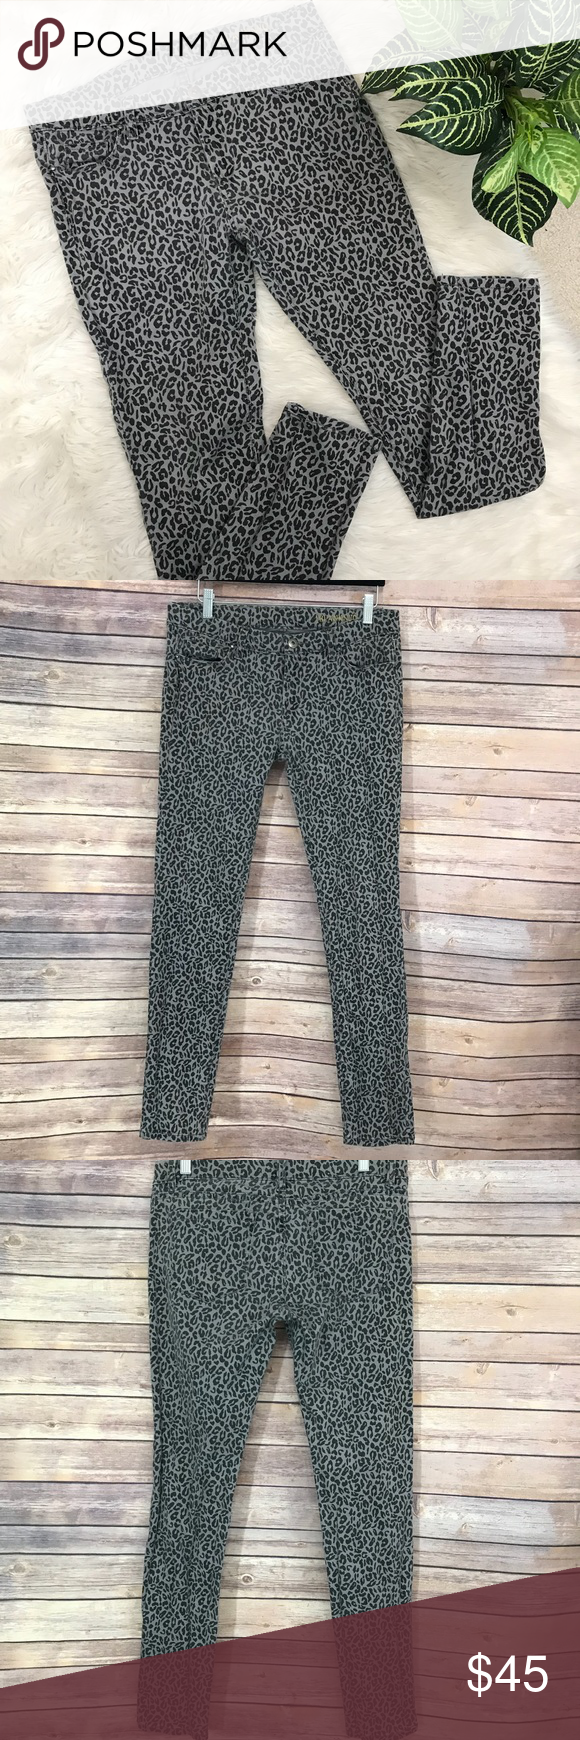 9d7d376e9f2e Blank NYC Gray Leopard animal print Skinny Jeans •Details• fun skinny jeans!  Stretchy leopard or cheetah print •Condition• Great Condition, lightly  worn, ...